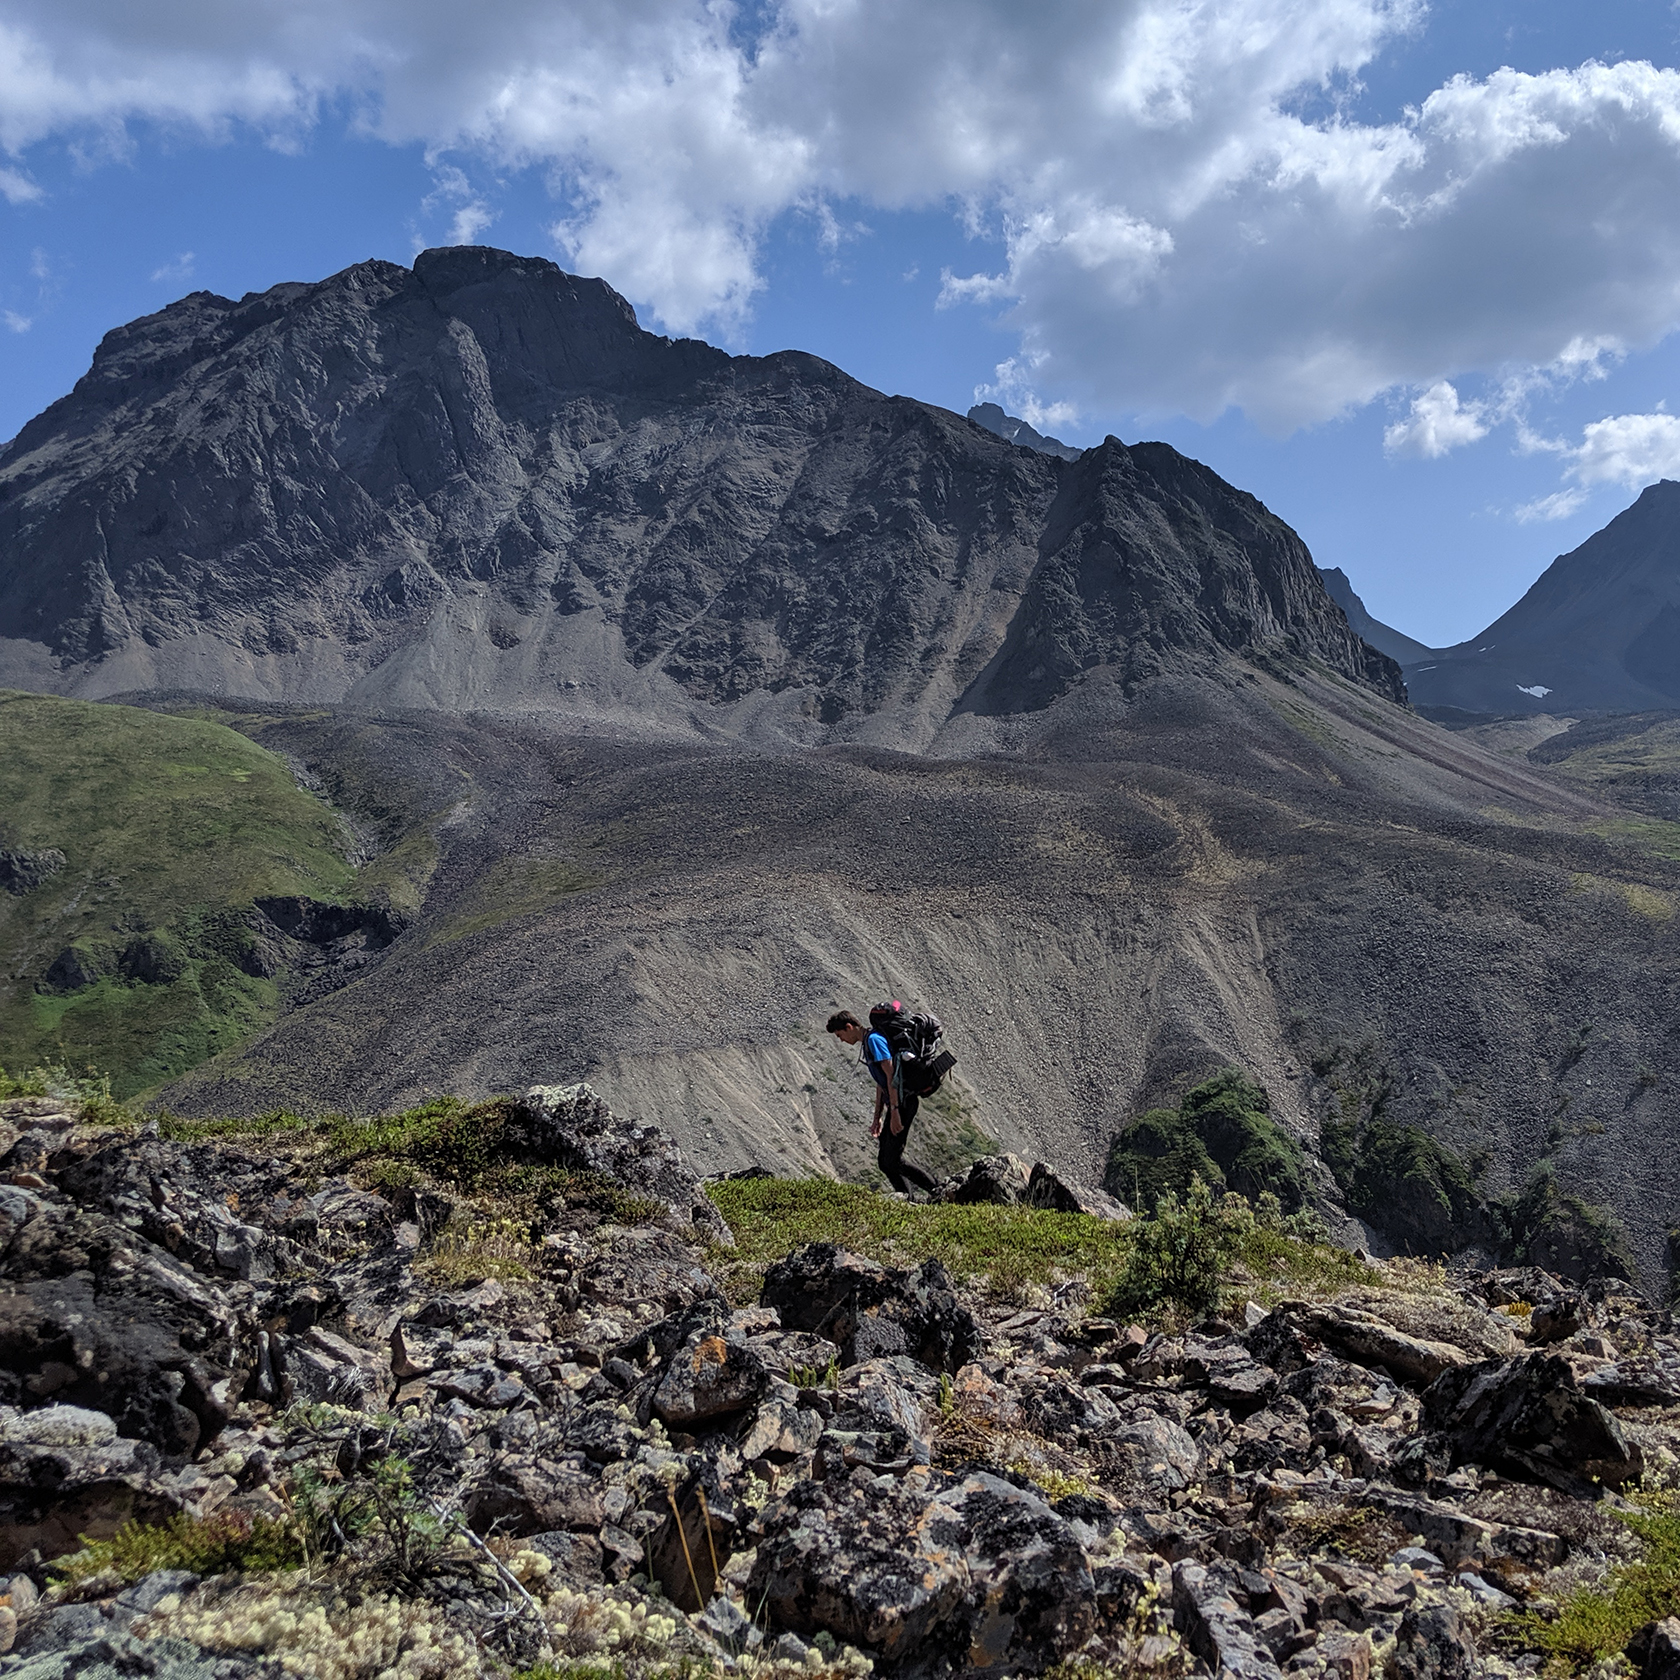 Backpacking on the Alaska Southcentral trip